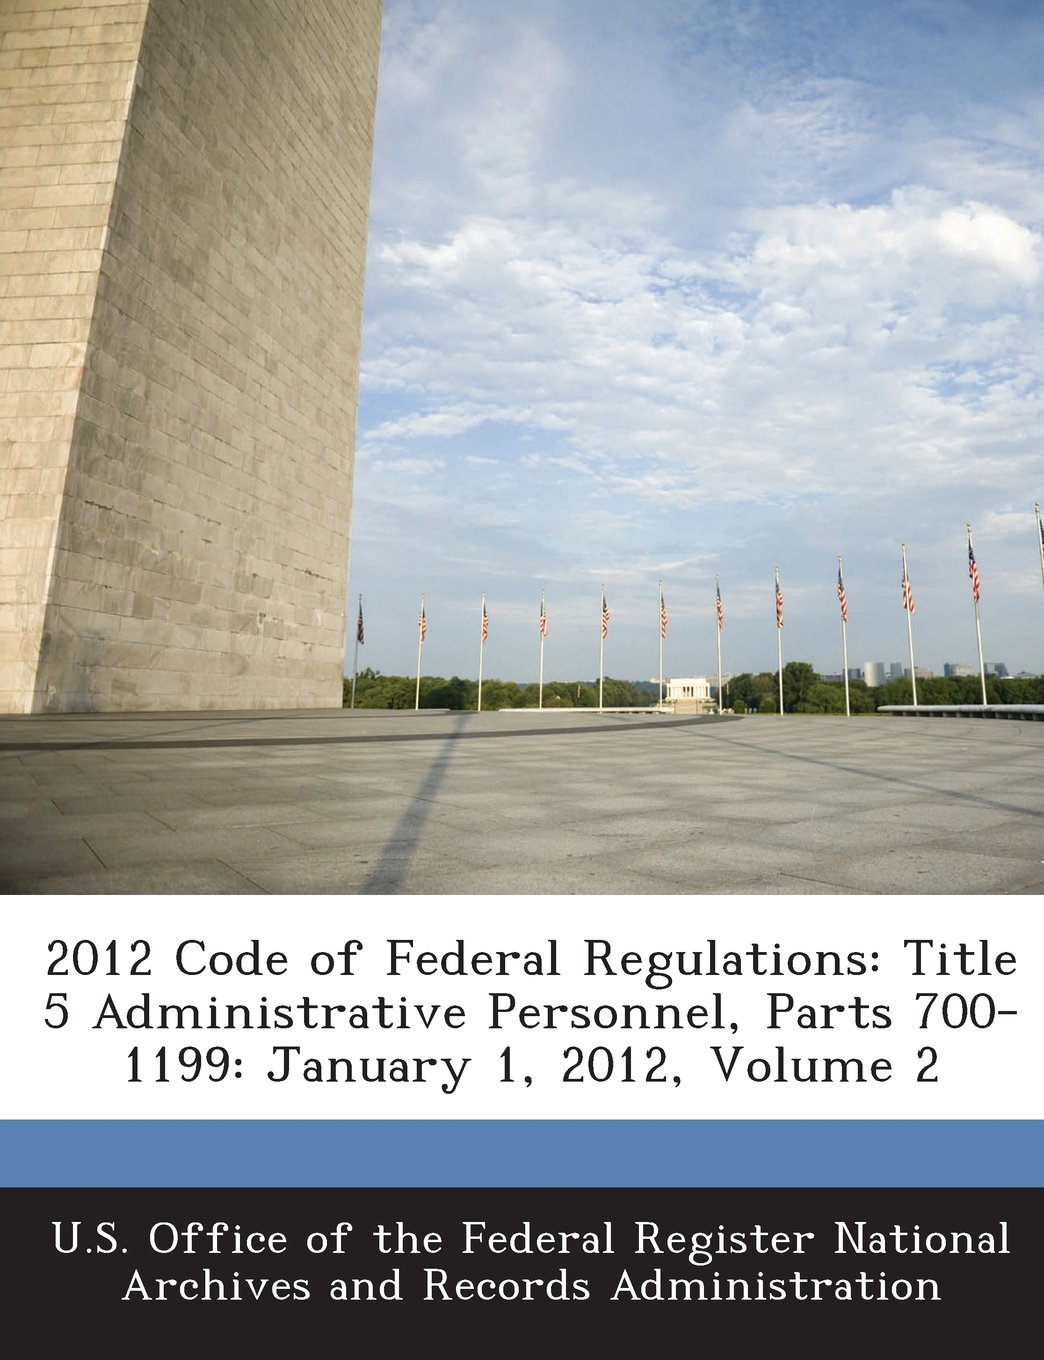 2012 Code of Federal Regulations: Title 5 Administrative Personnel, Parts 700-1199: January 1, 2012, Volume 2 pdf